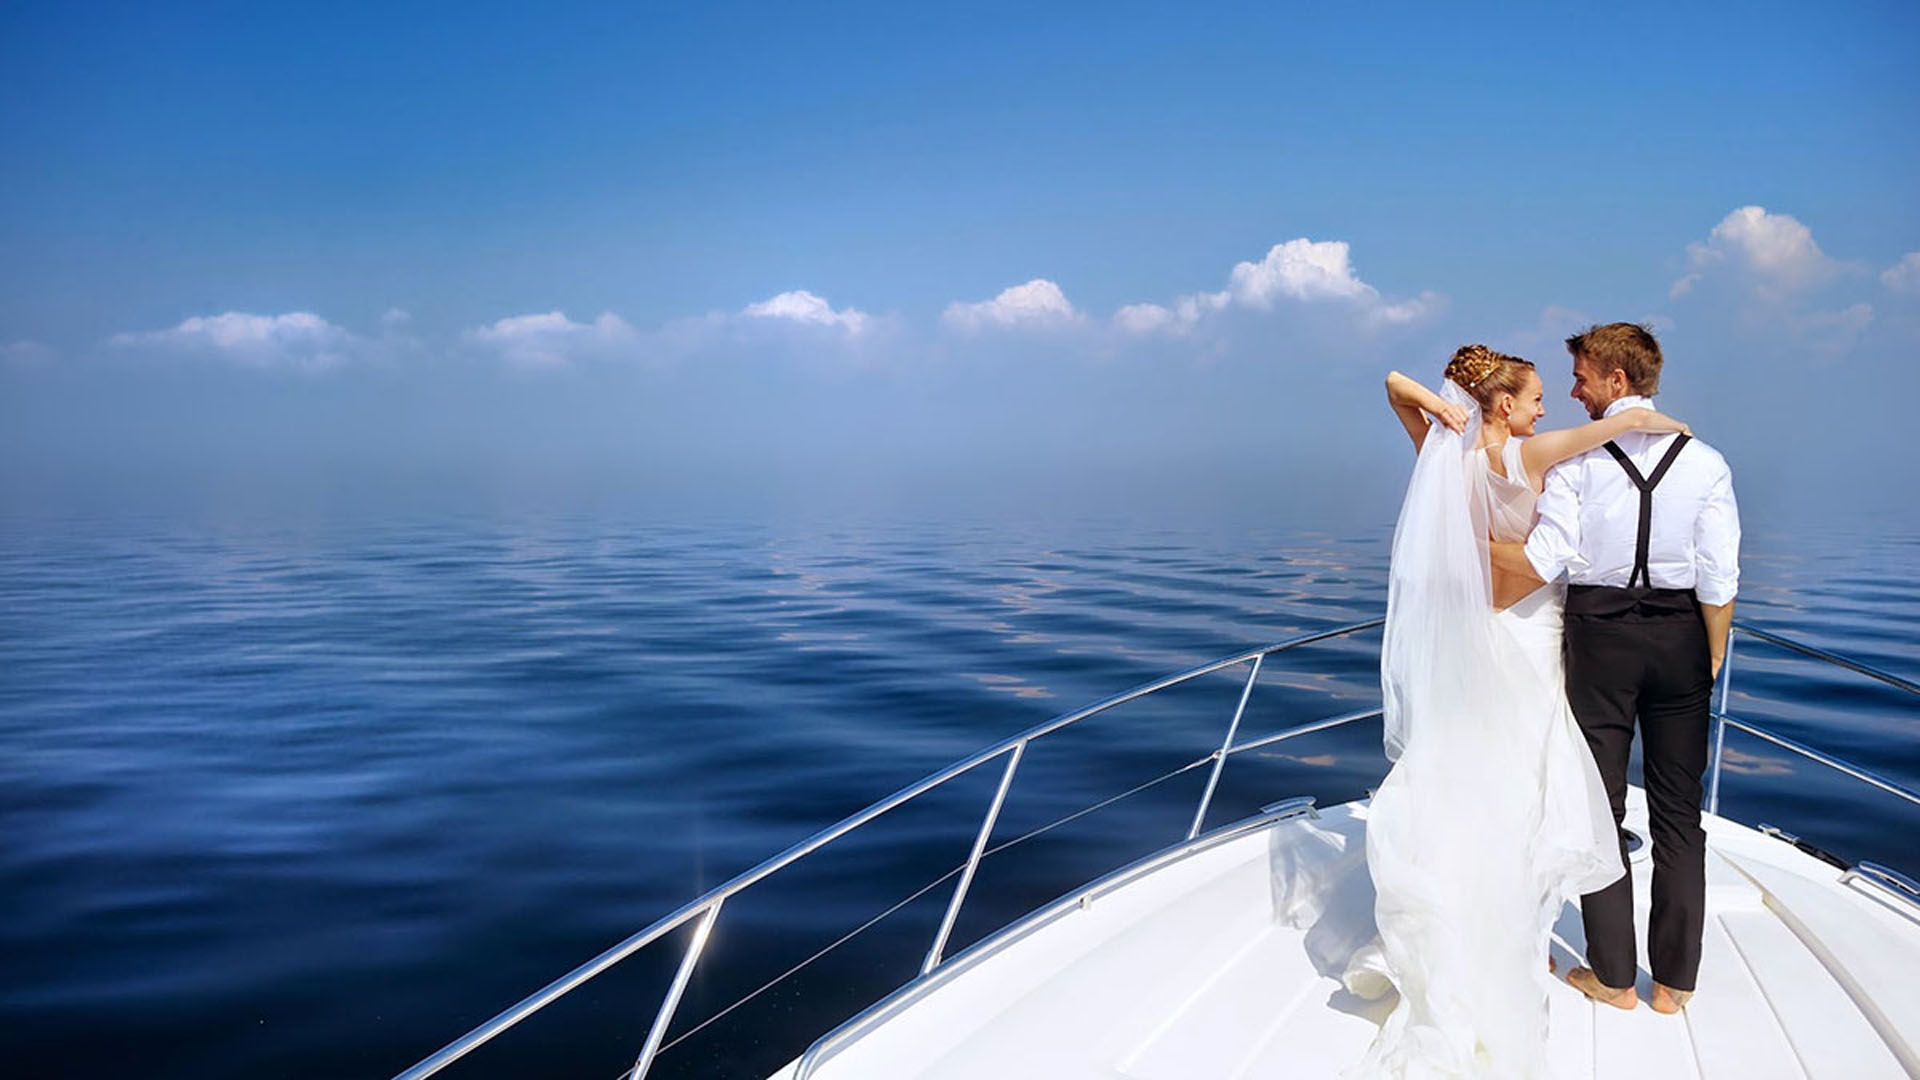 The most romantic getaway: A honeymoon yacht charter in Italy